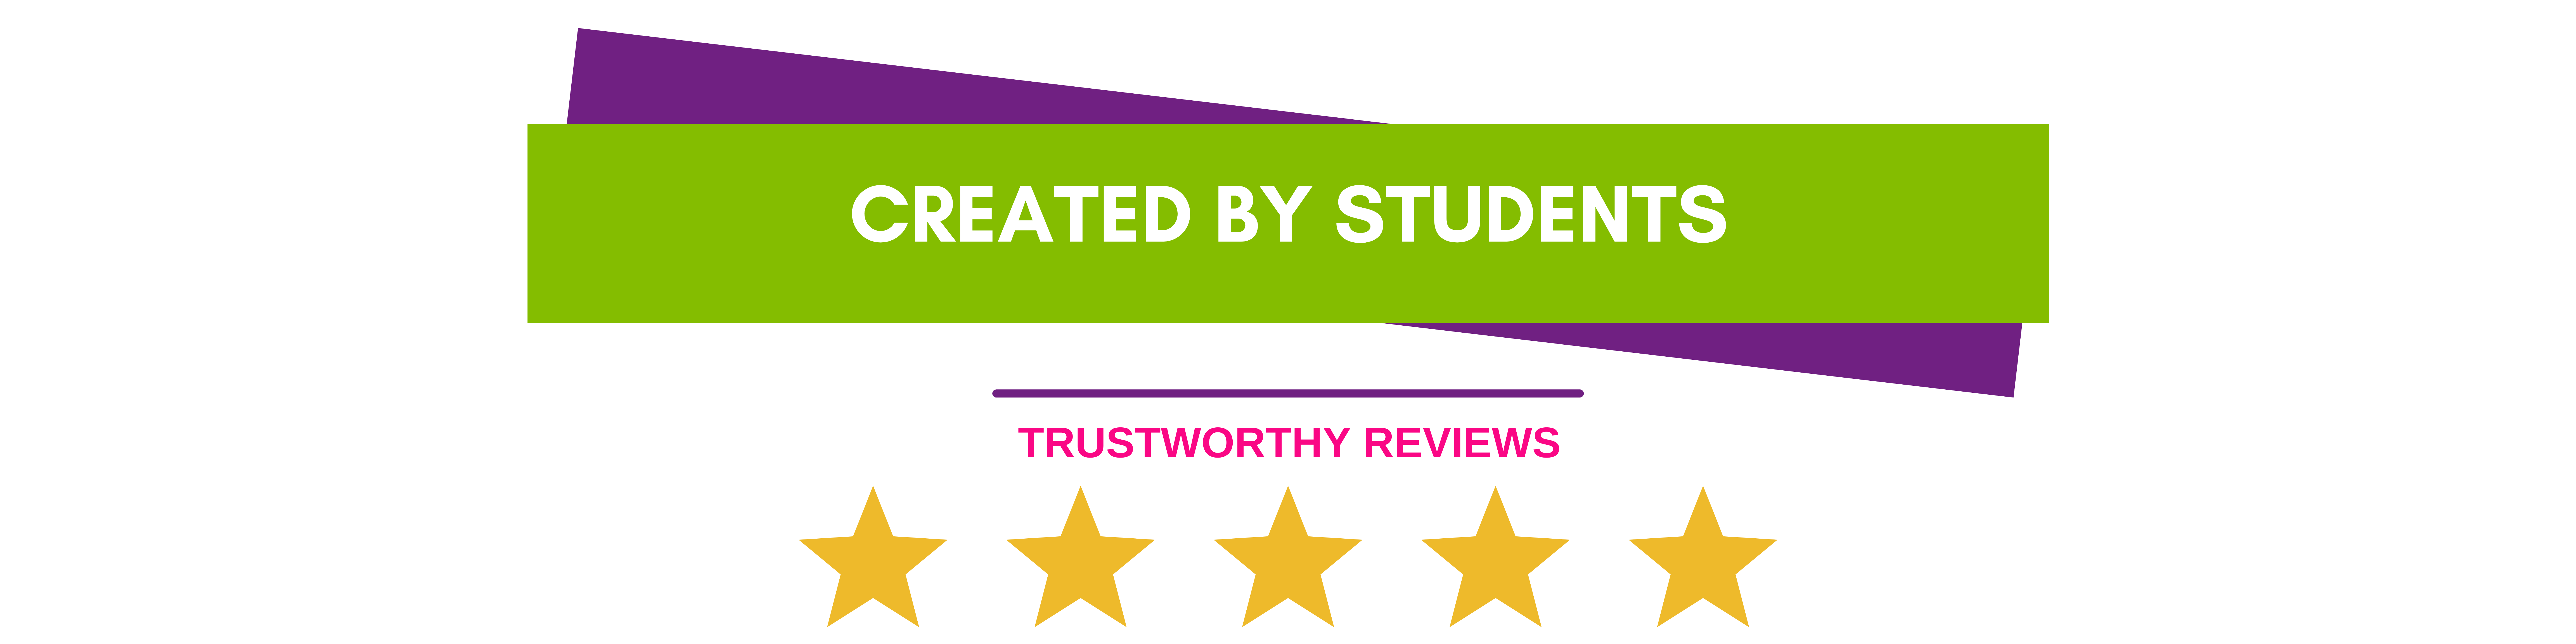 Dream-Team-Team-Stand-Up-Loyal-Students-Trustworthy-Reviews-Assuaged